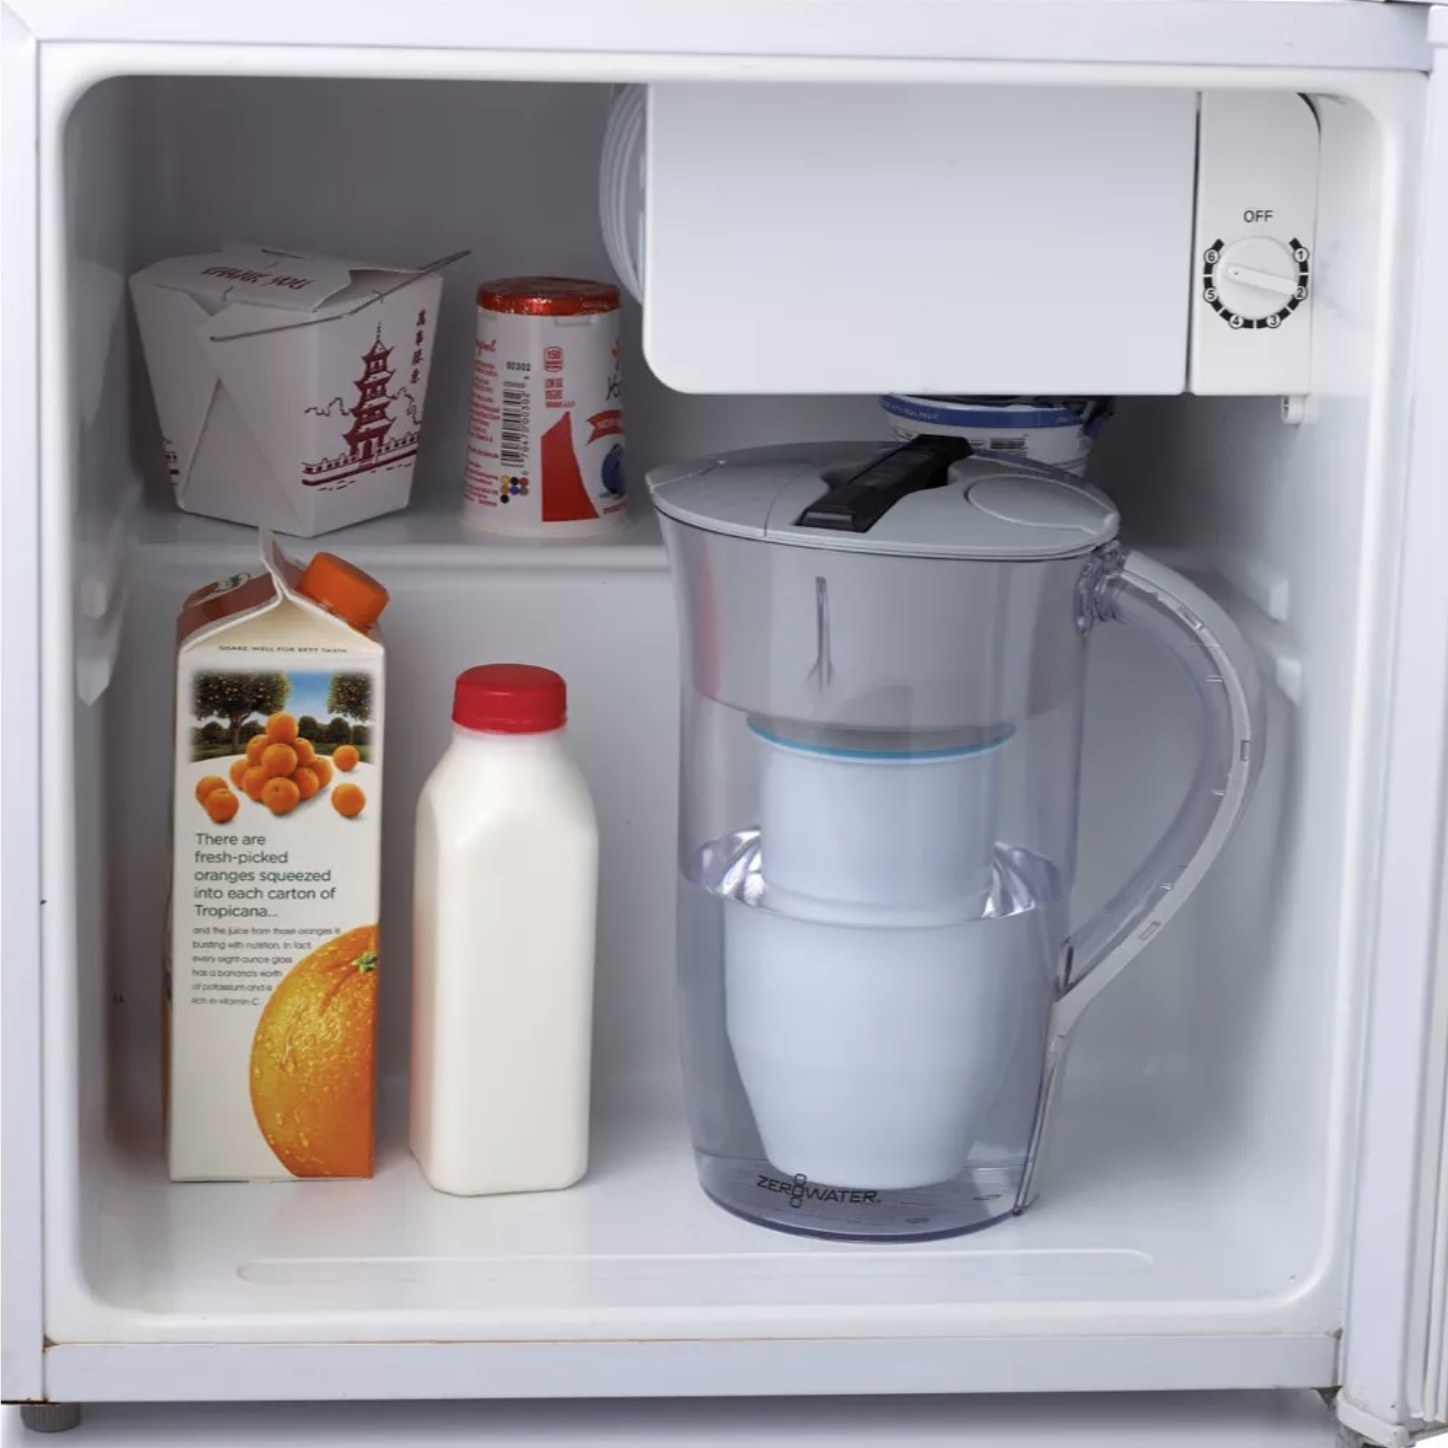 An 8-cup round water filtering pitches sits inside a mini-fridge with other food